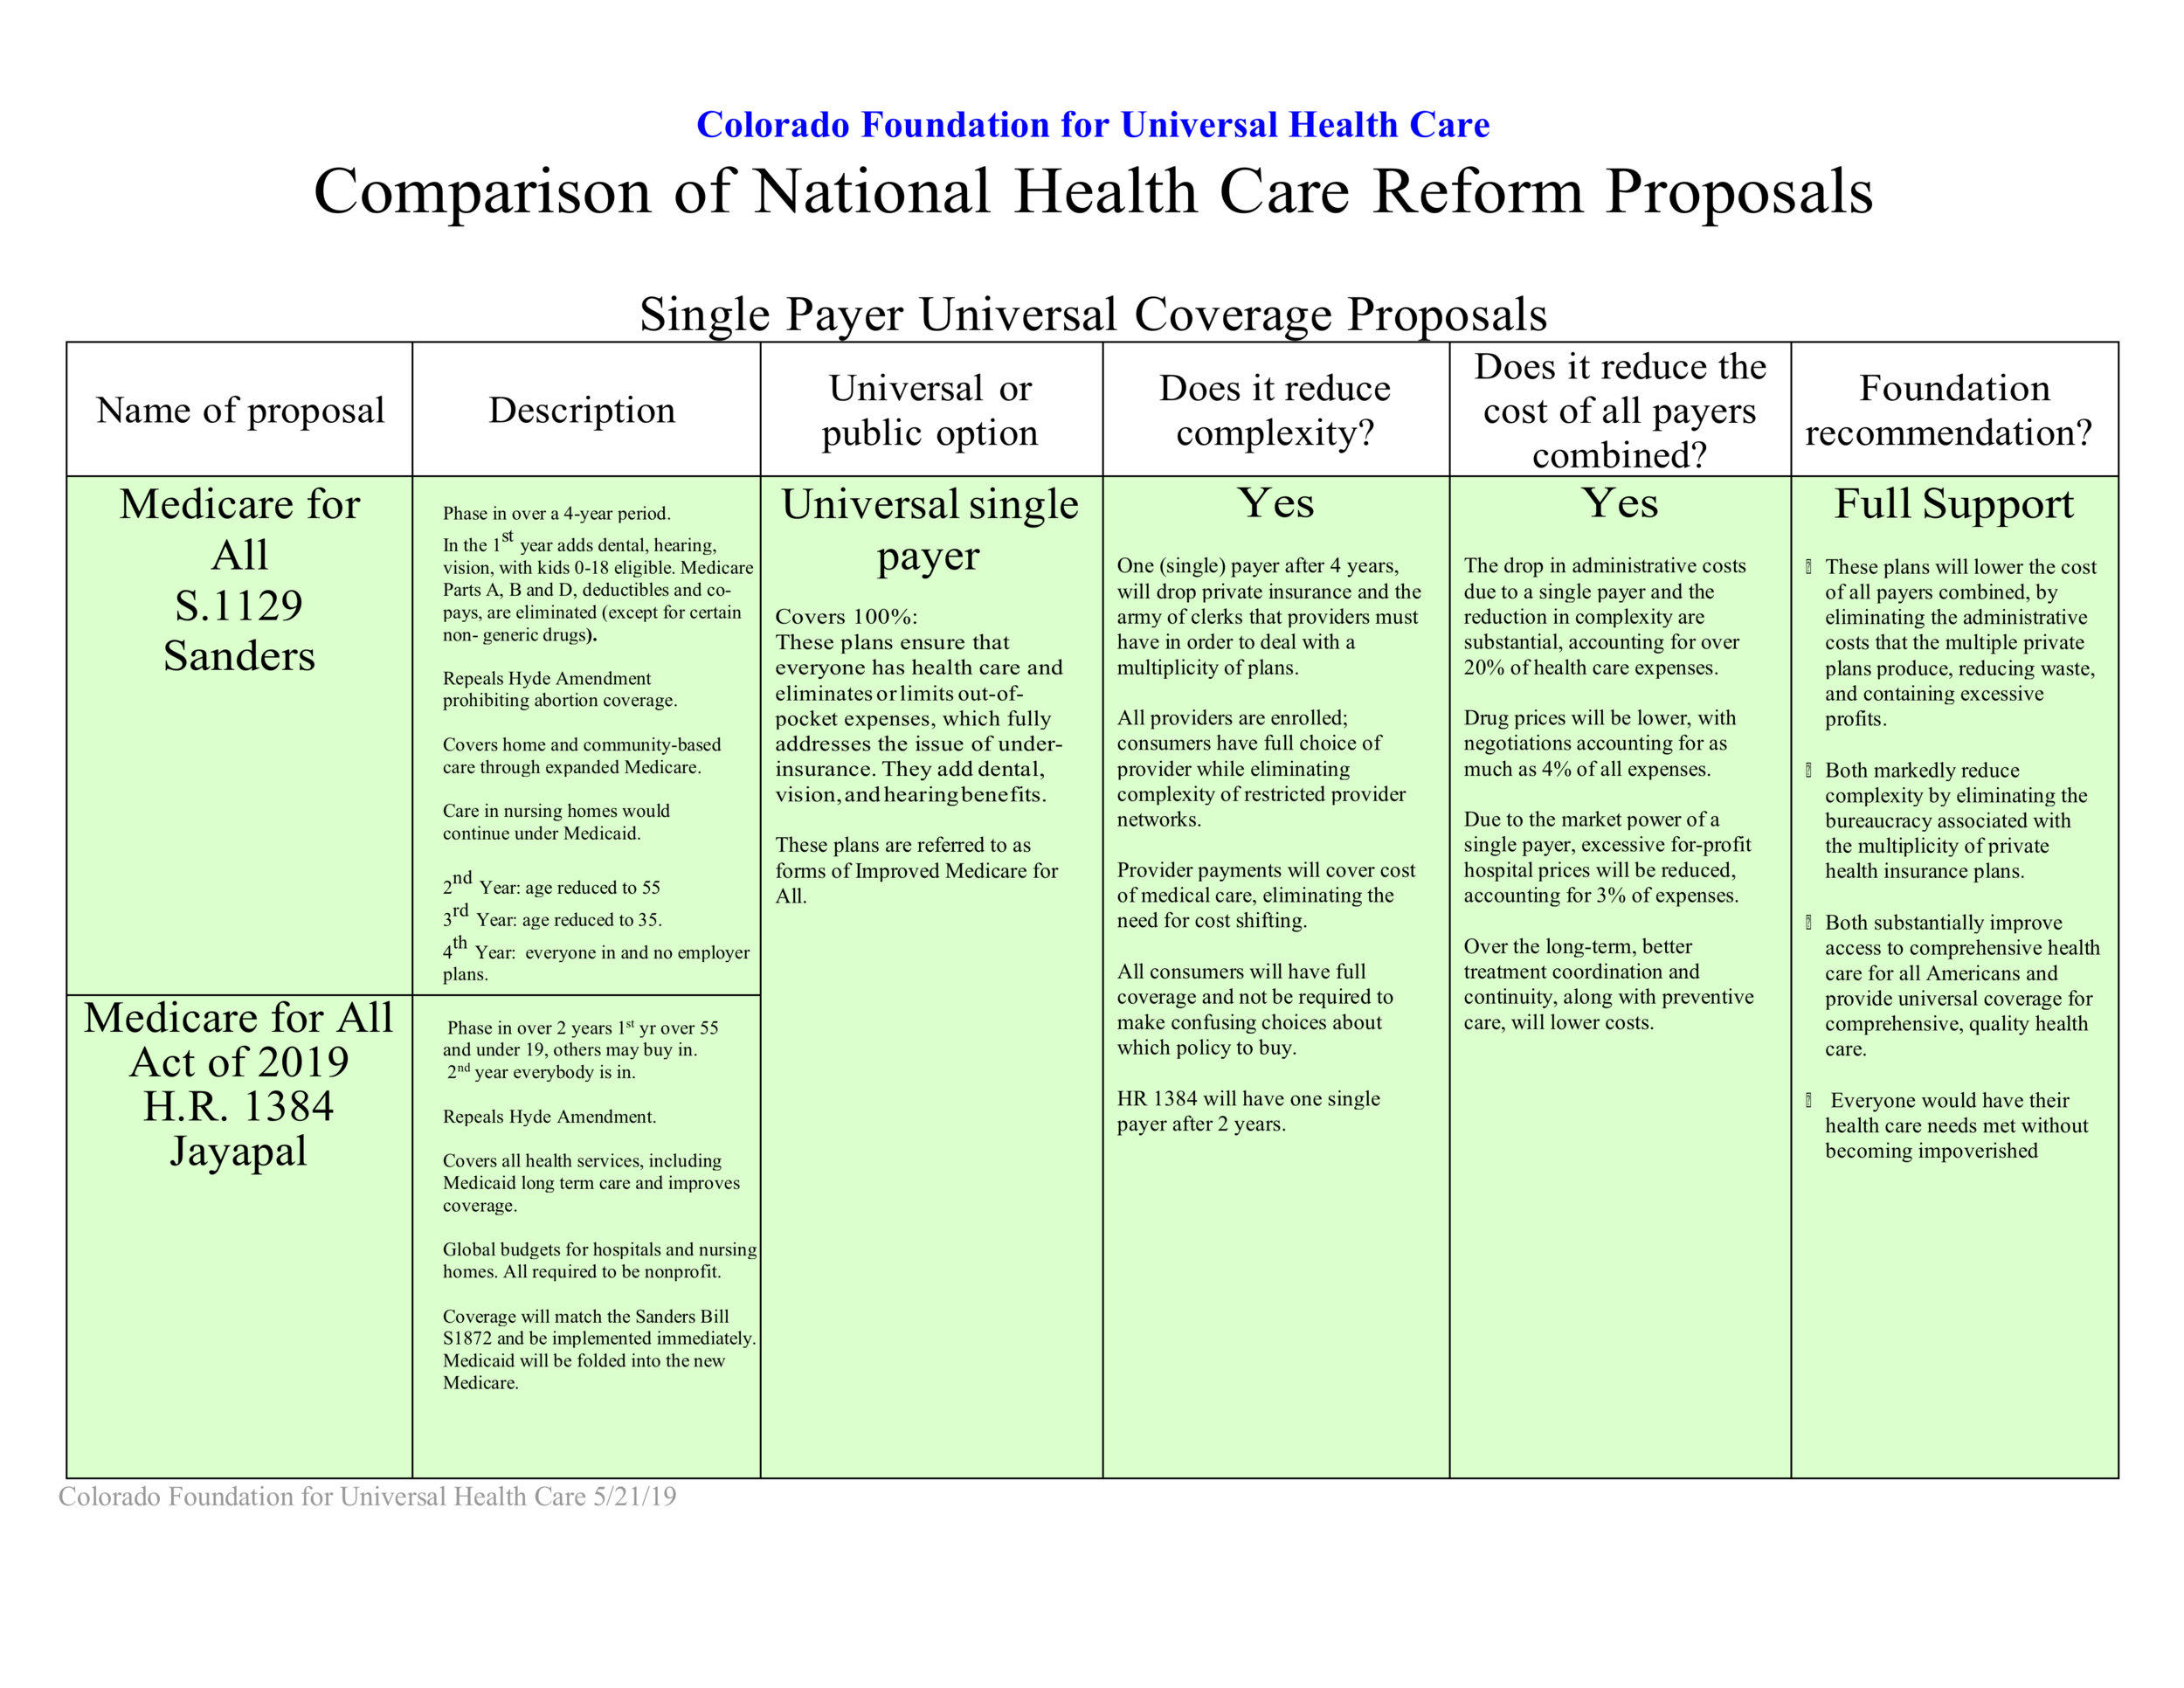 Colorado Foundation Grid of Health Care Reform Proposals,06032019,jrp.png